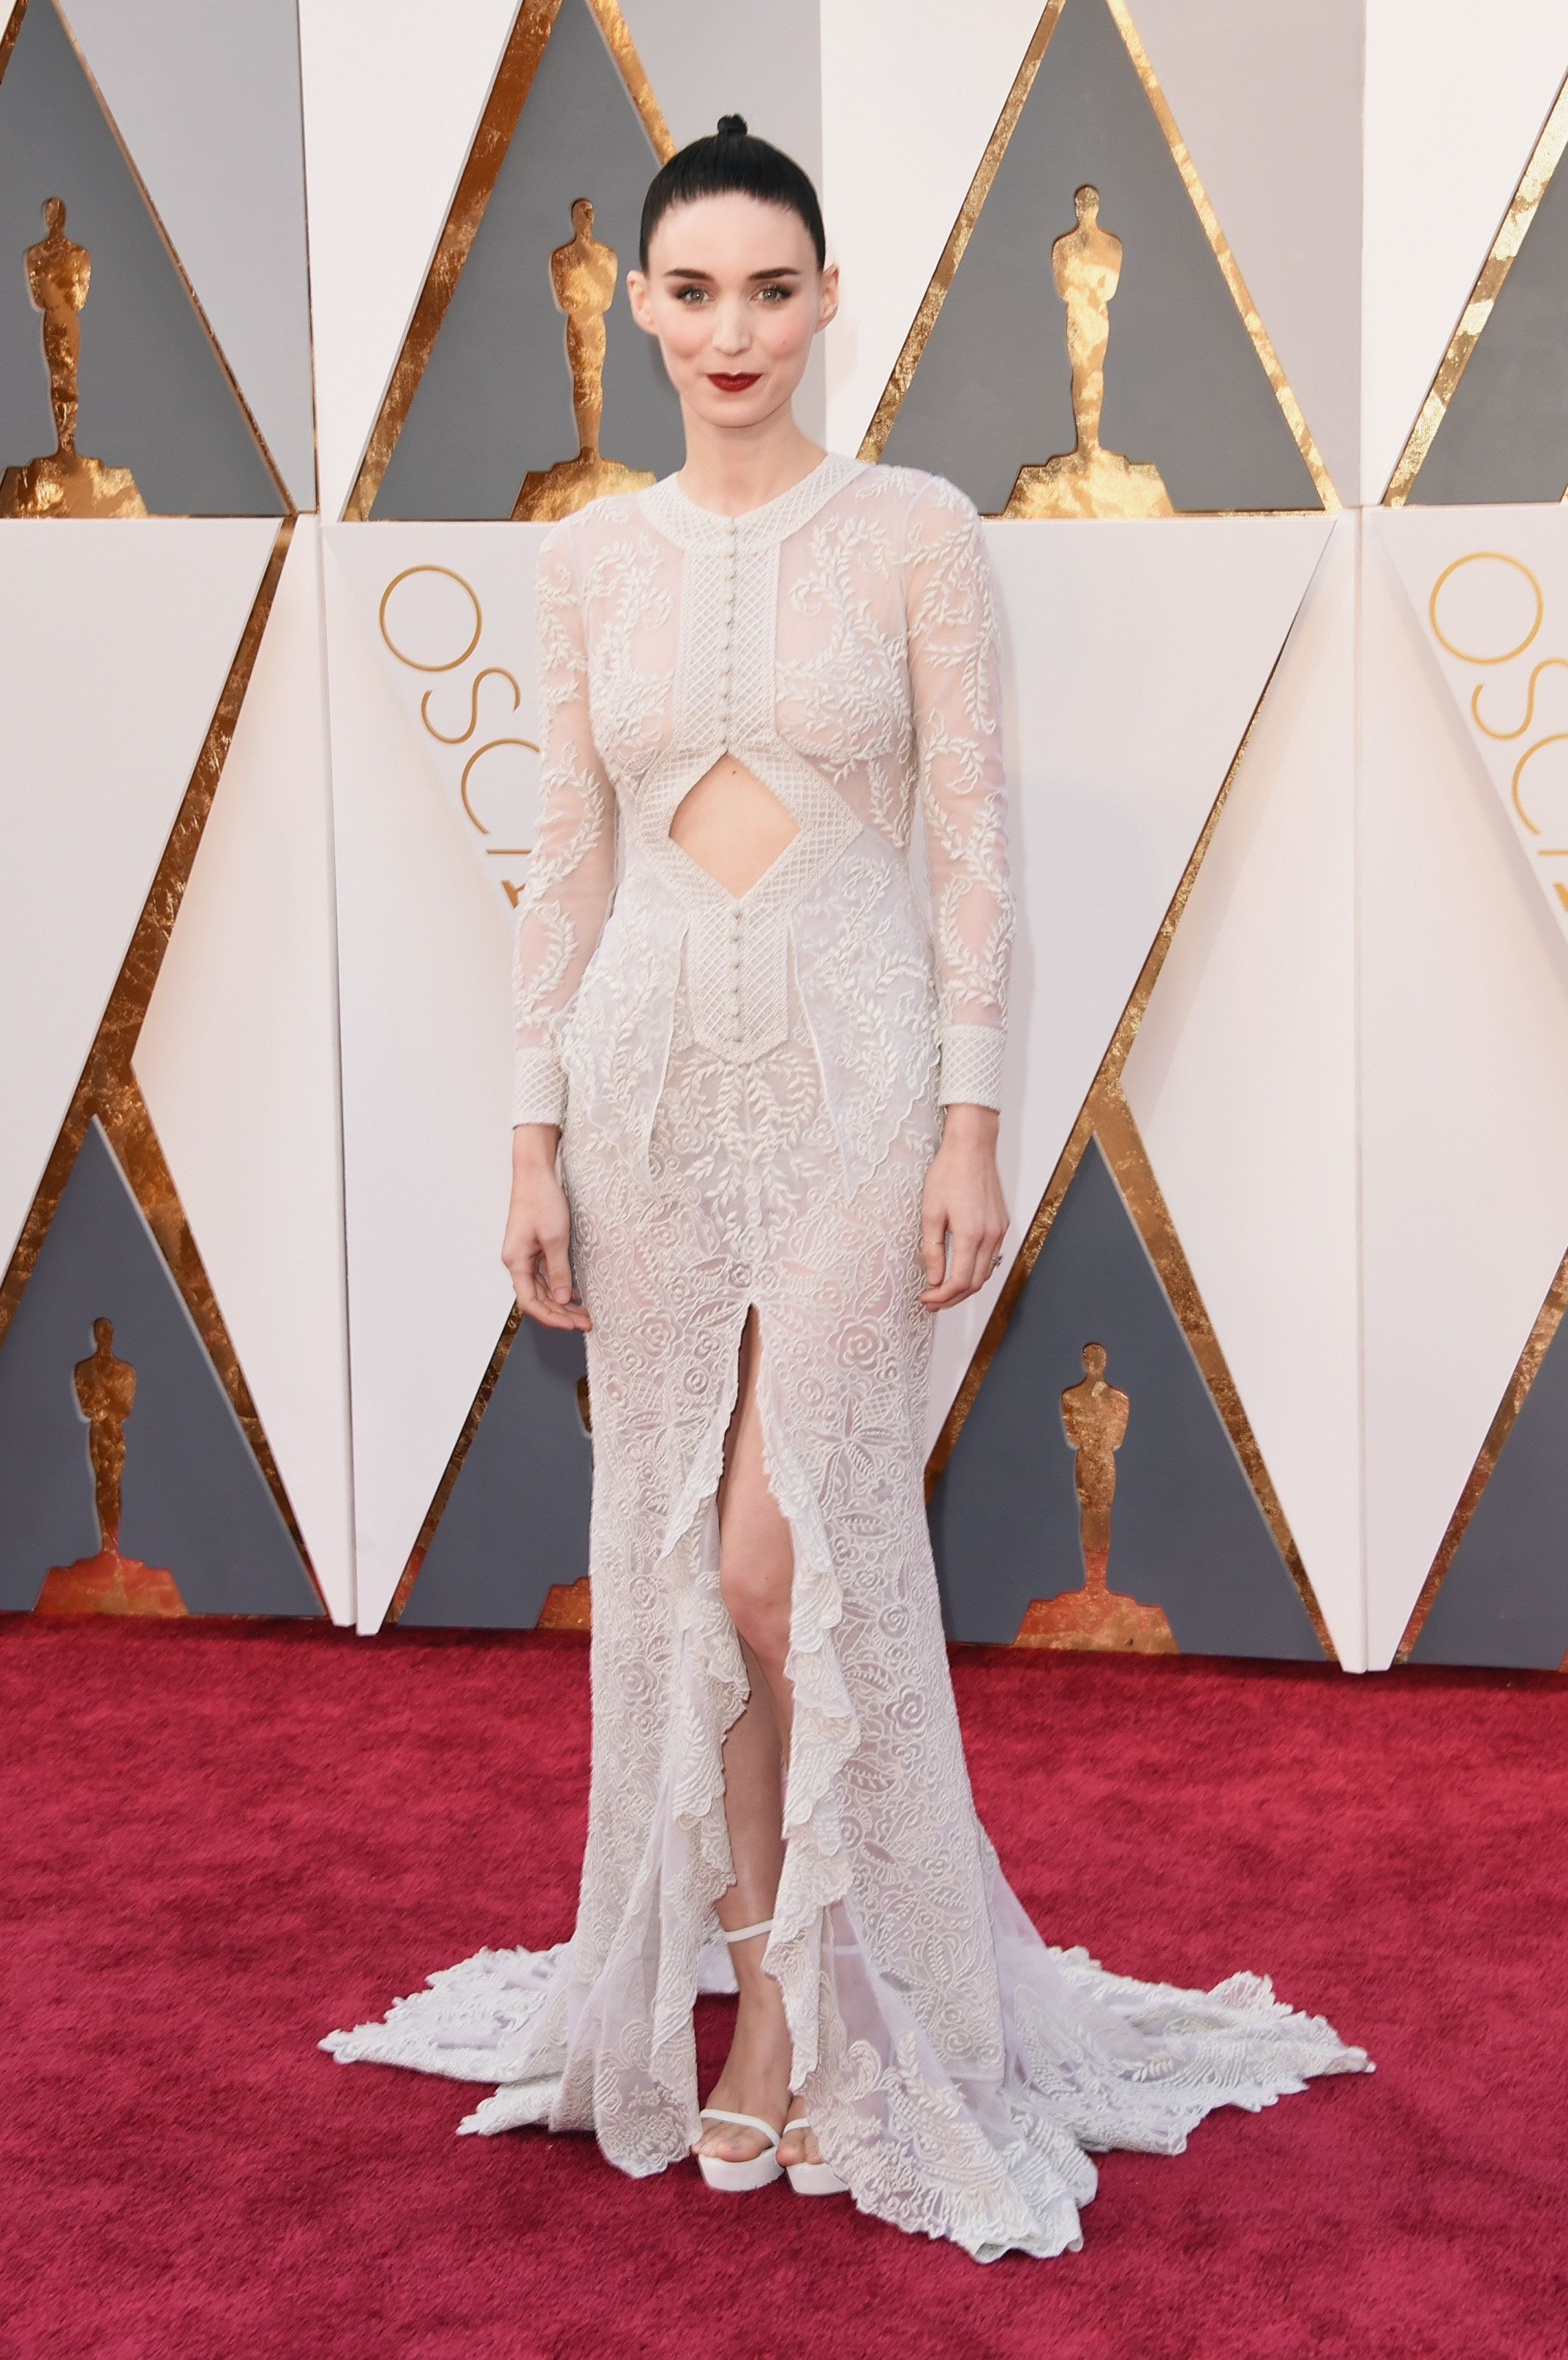 Rooney Mara attends the 88th Annual Academy Awards.